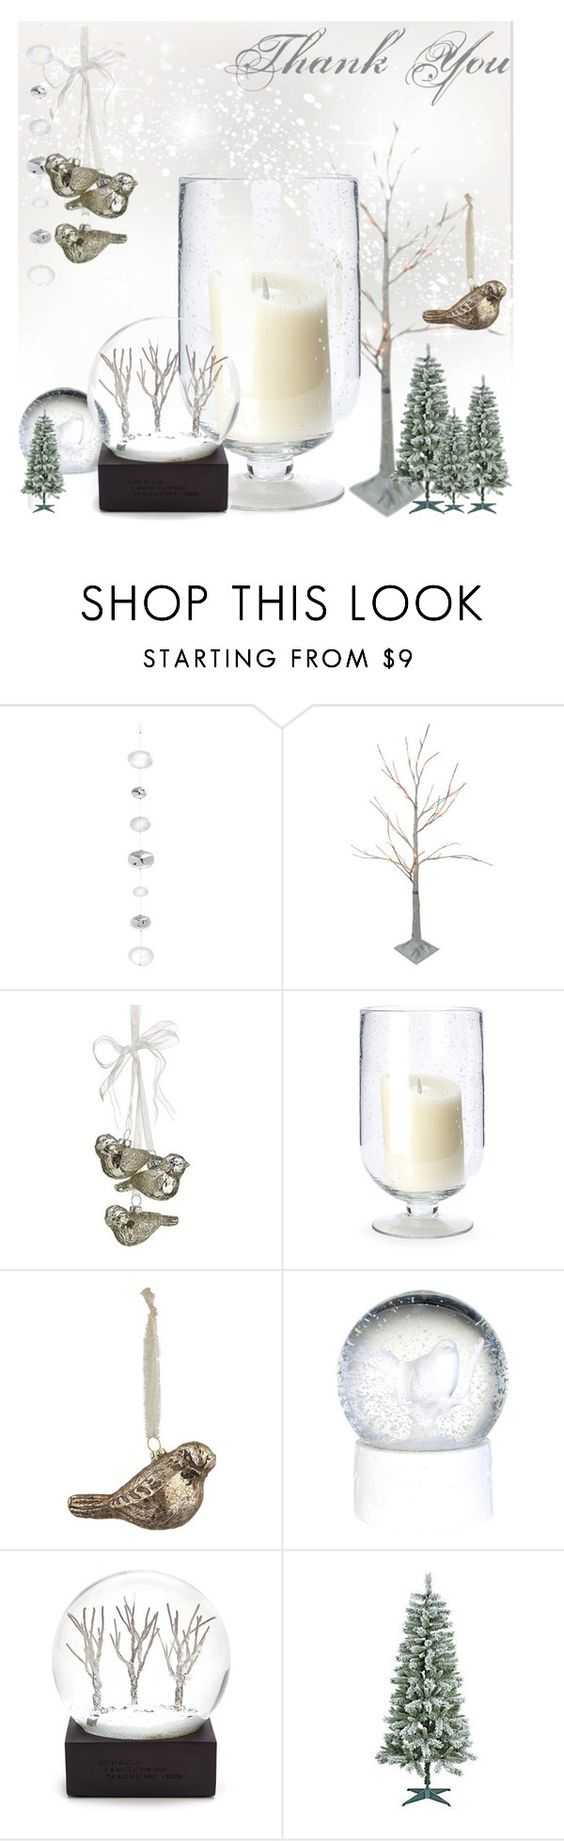 """Thank You"" by mrs-rc ❤ liked on Polyvore featuring interior, interiors, interior design, home, home decor, interior decorating, Thos. Baker, Lene Bjerre, holidays and hostessgifts"